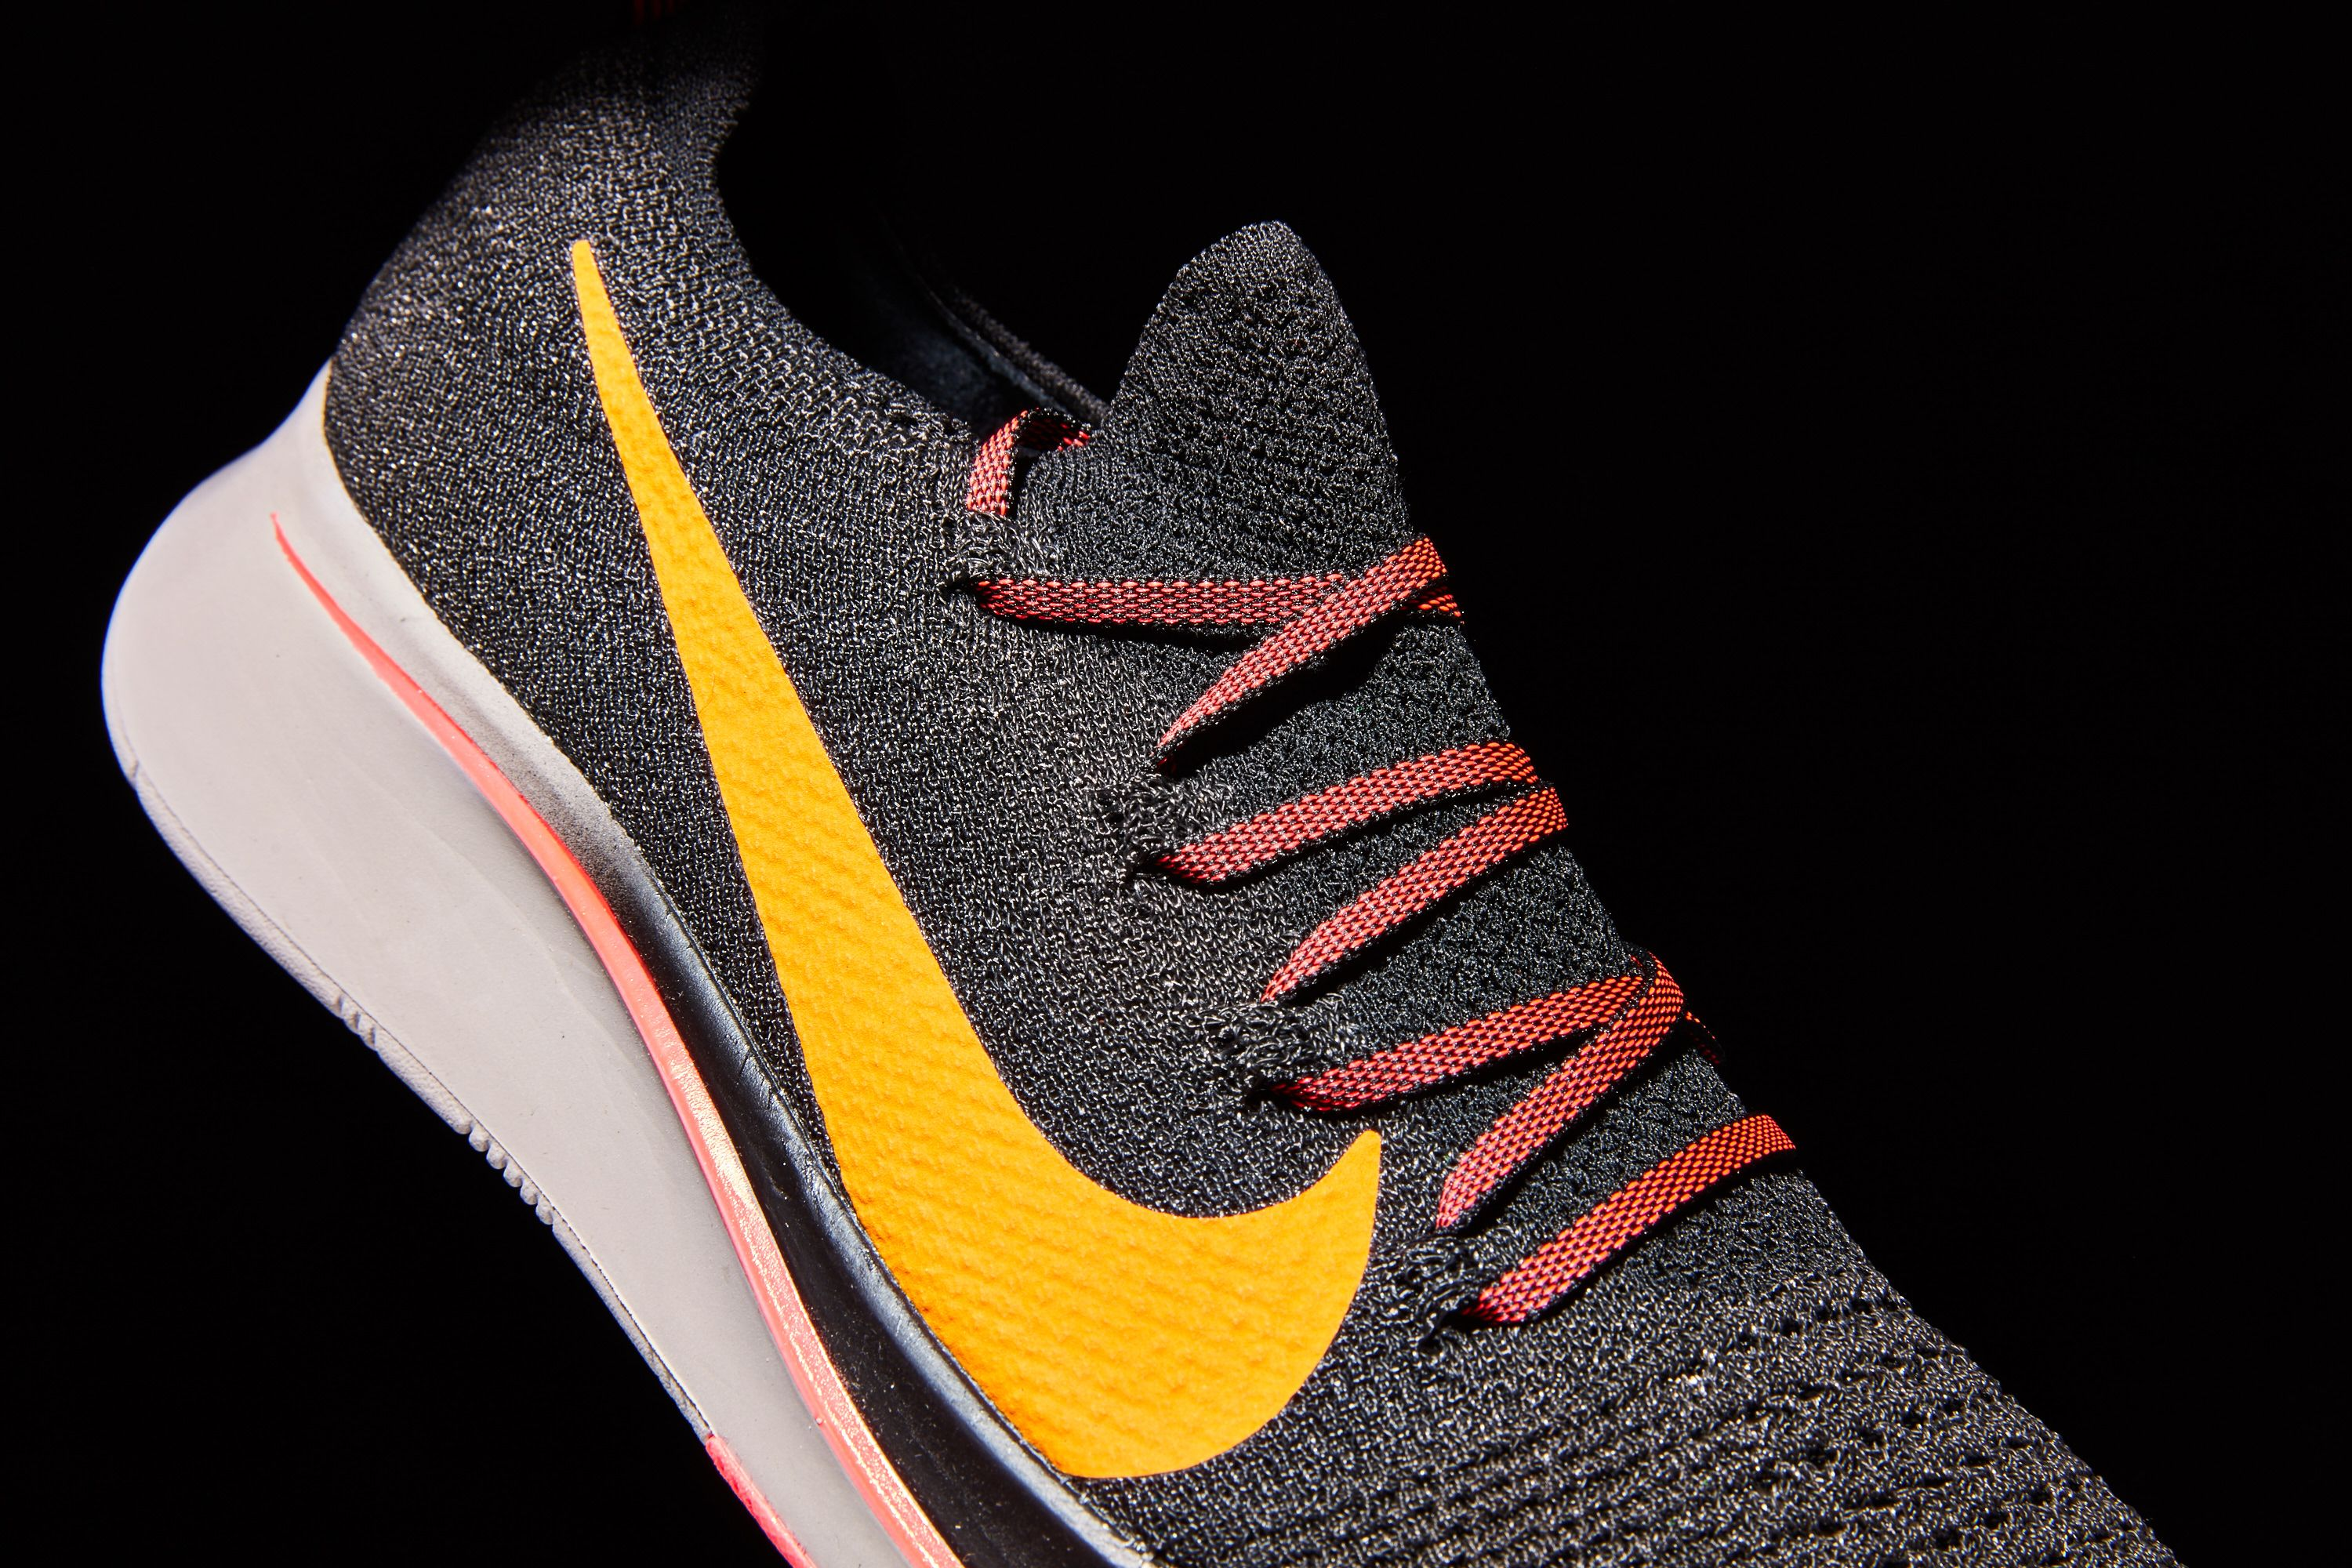 a686de6231d0 Nike Zoom Fly Flyknit Review - Nike Running Shoes